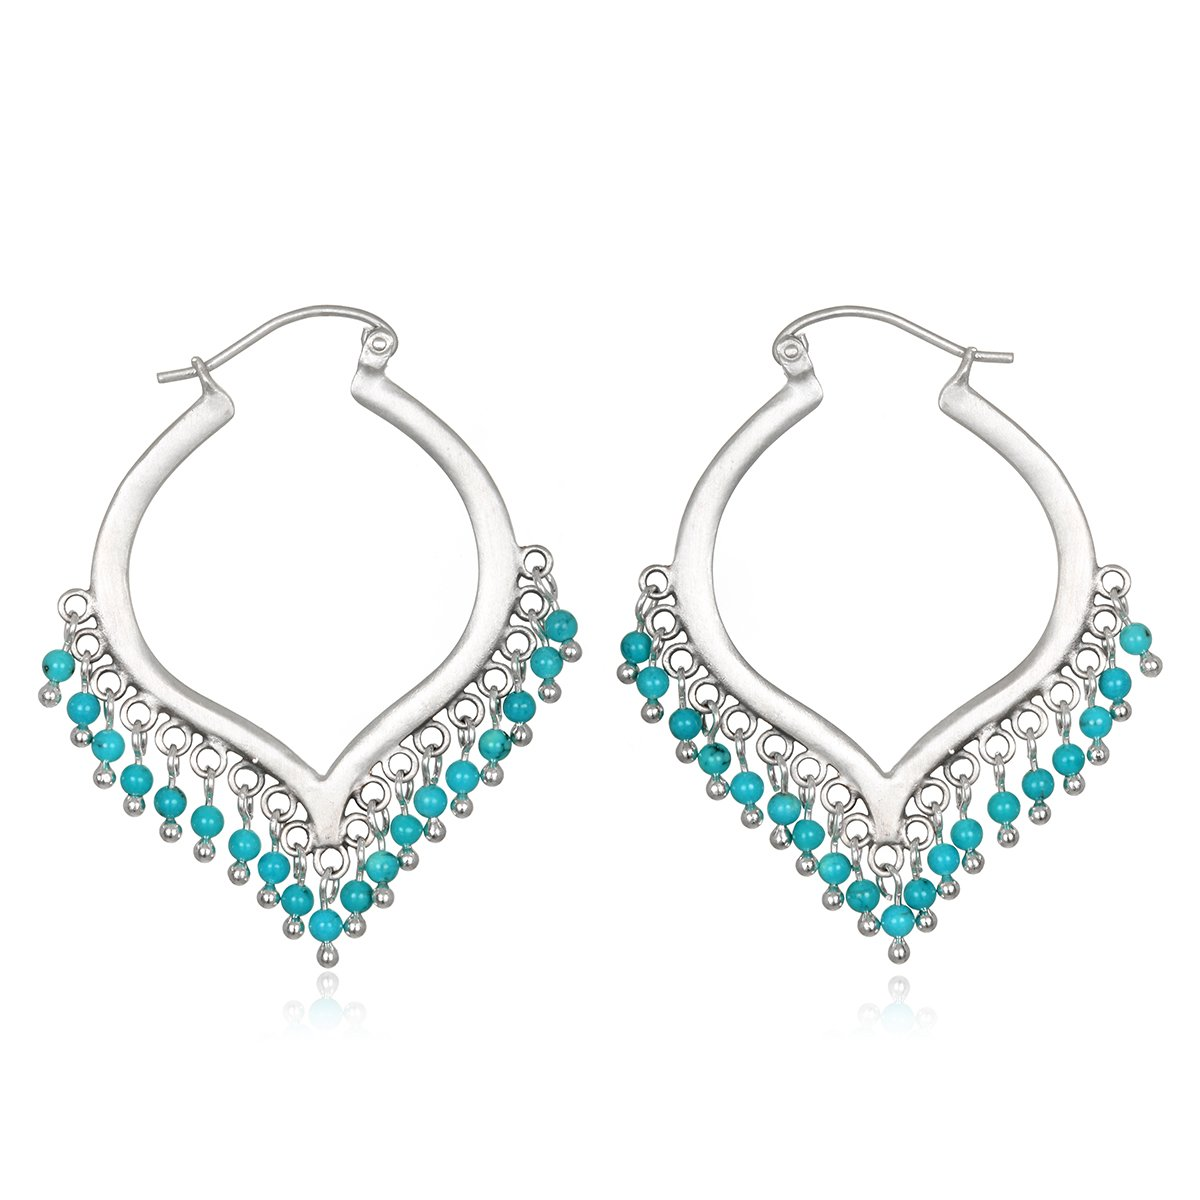 Satya Jewelry Women's Turquoise Silver Wrapped Hoop Earrings, Blue, One Size